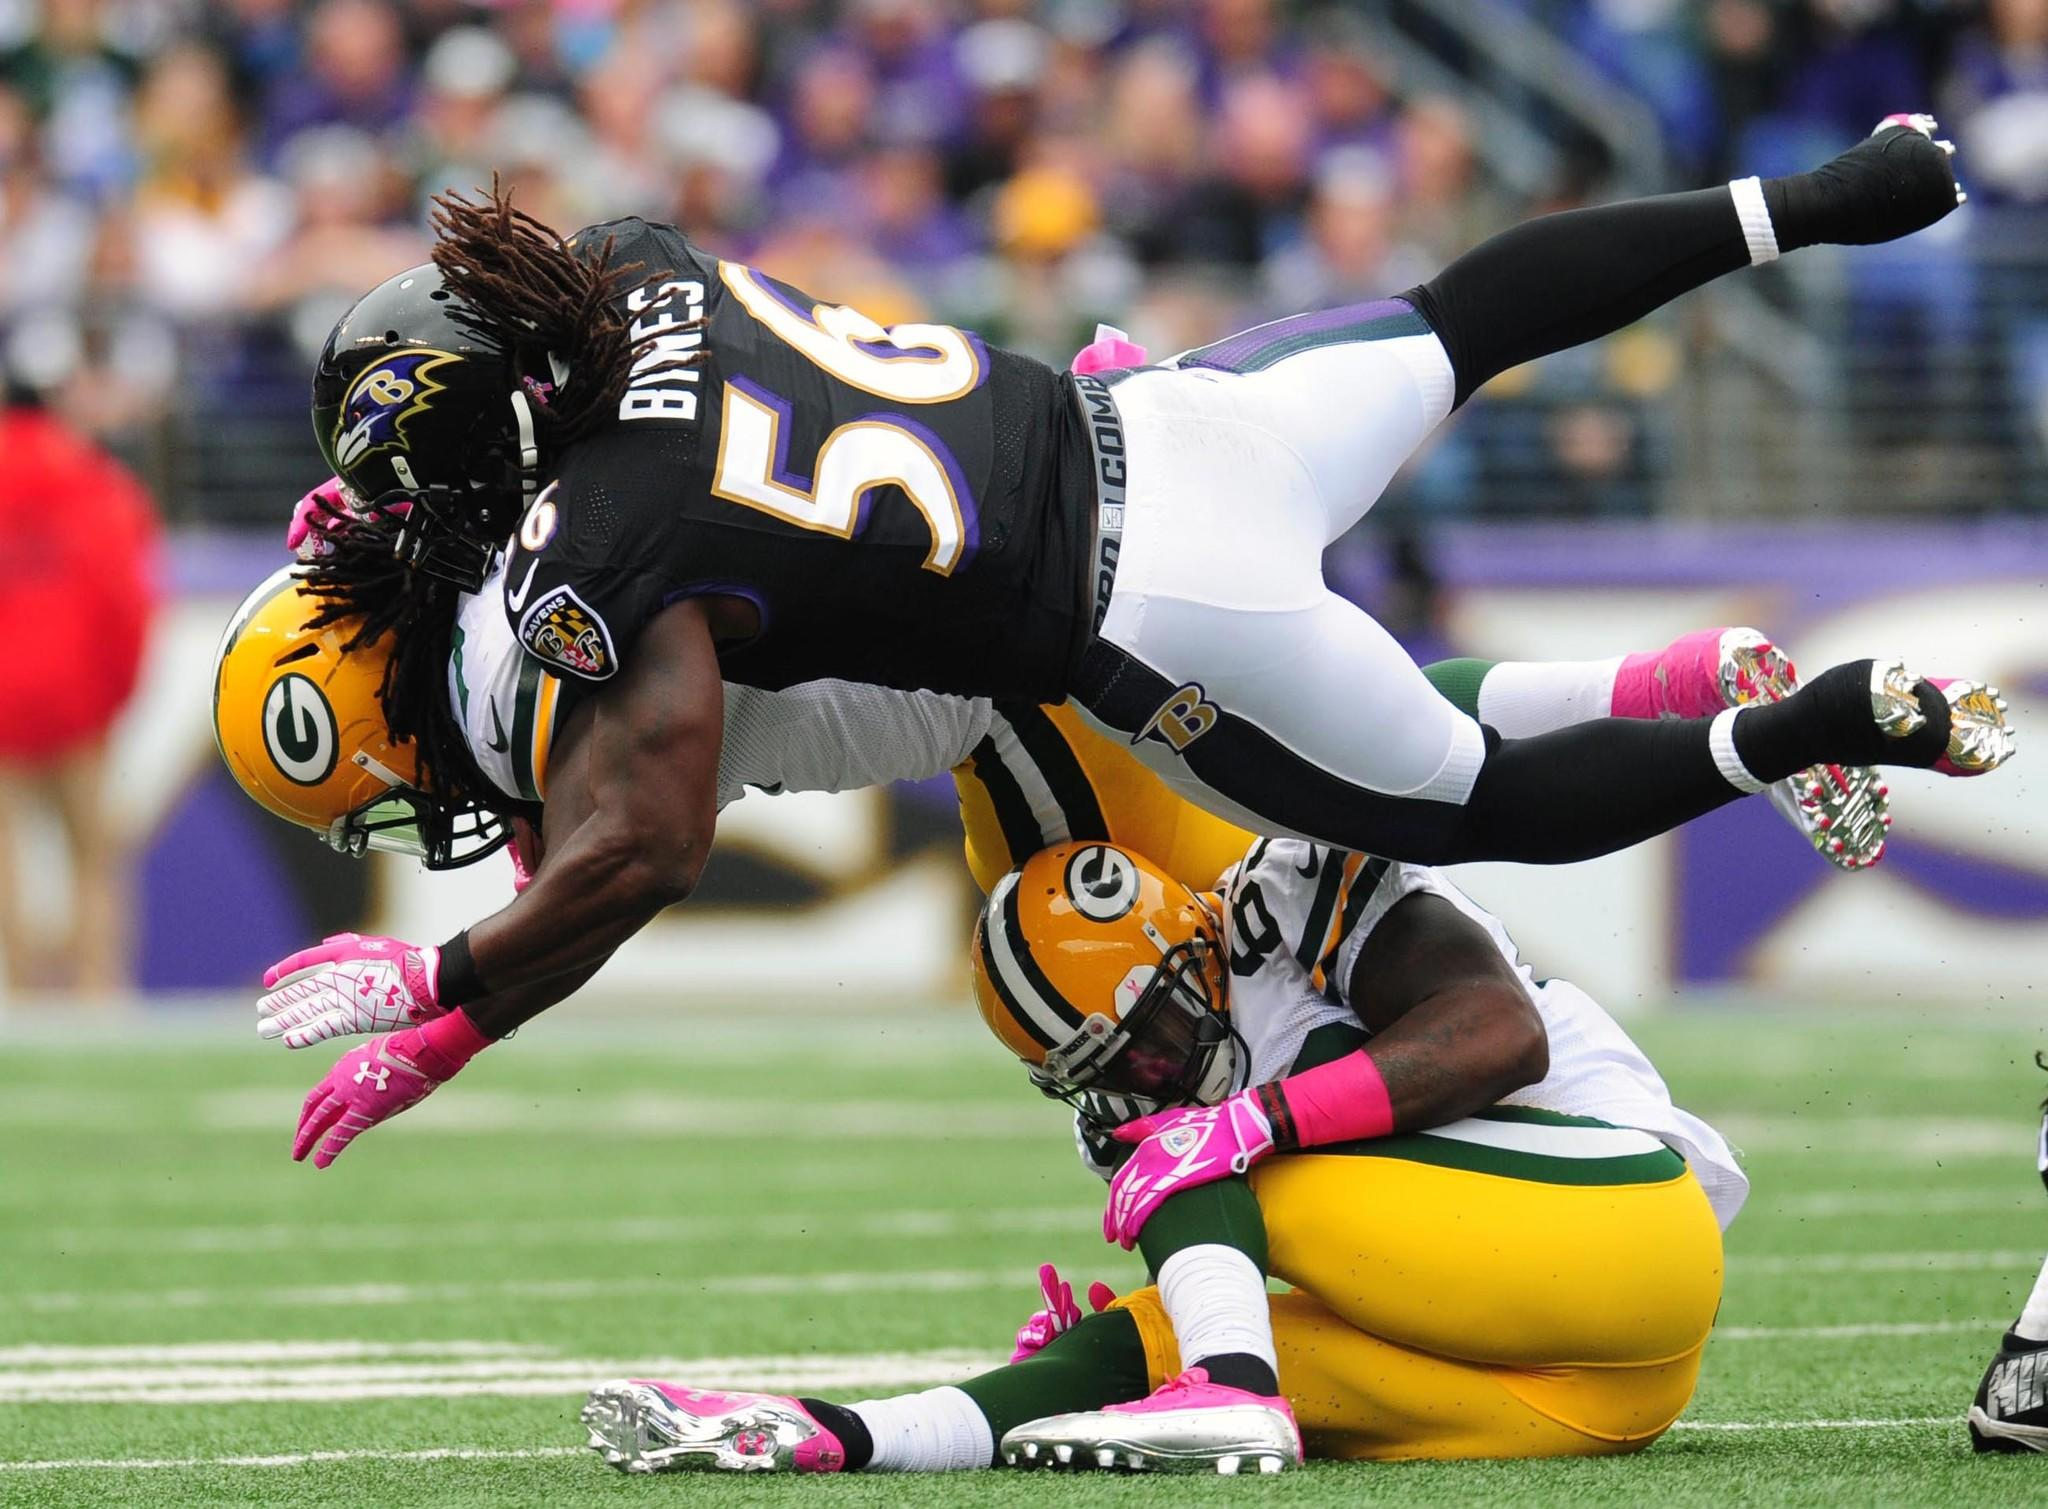 Ravens linebacker Josh Bynes tackles Green Bay Packers running back Eddie Lacy at M&T Bank Stadium.